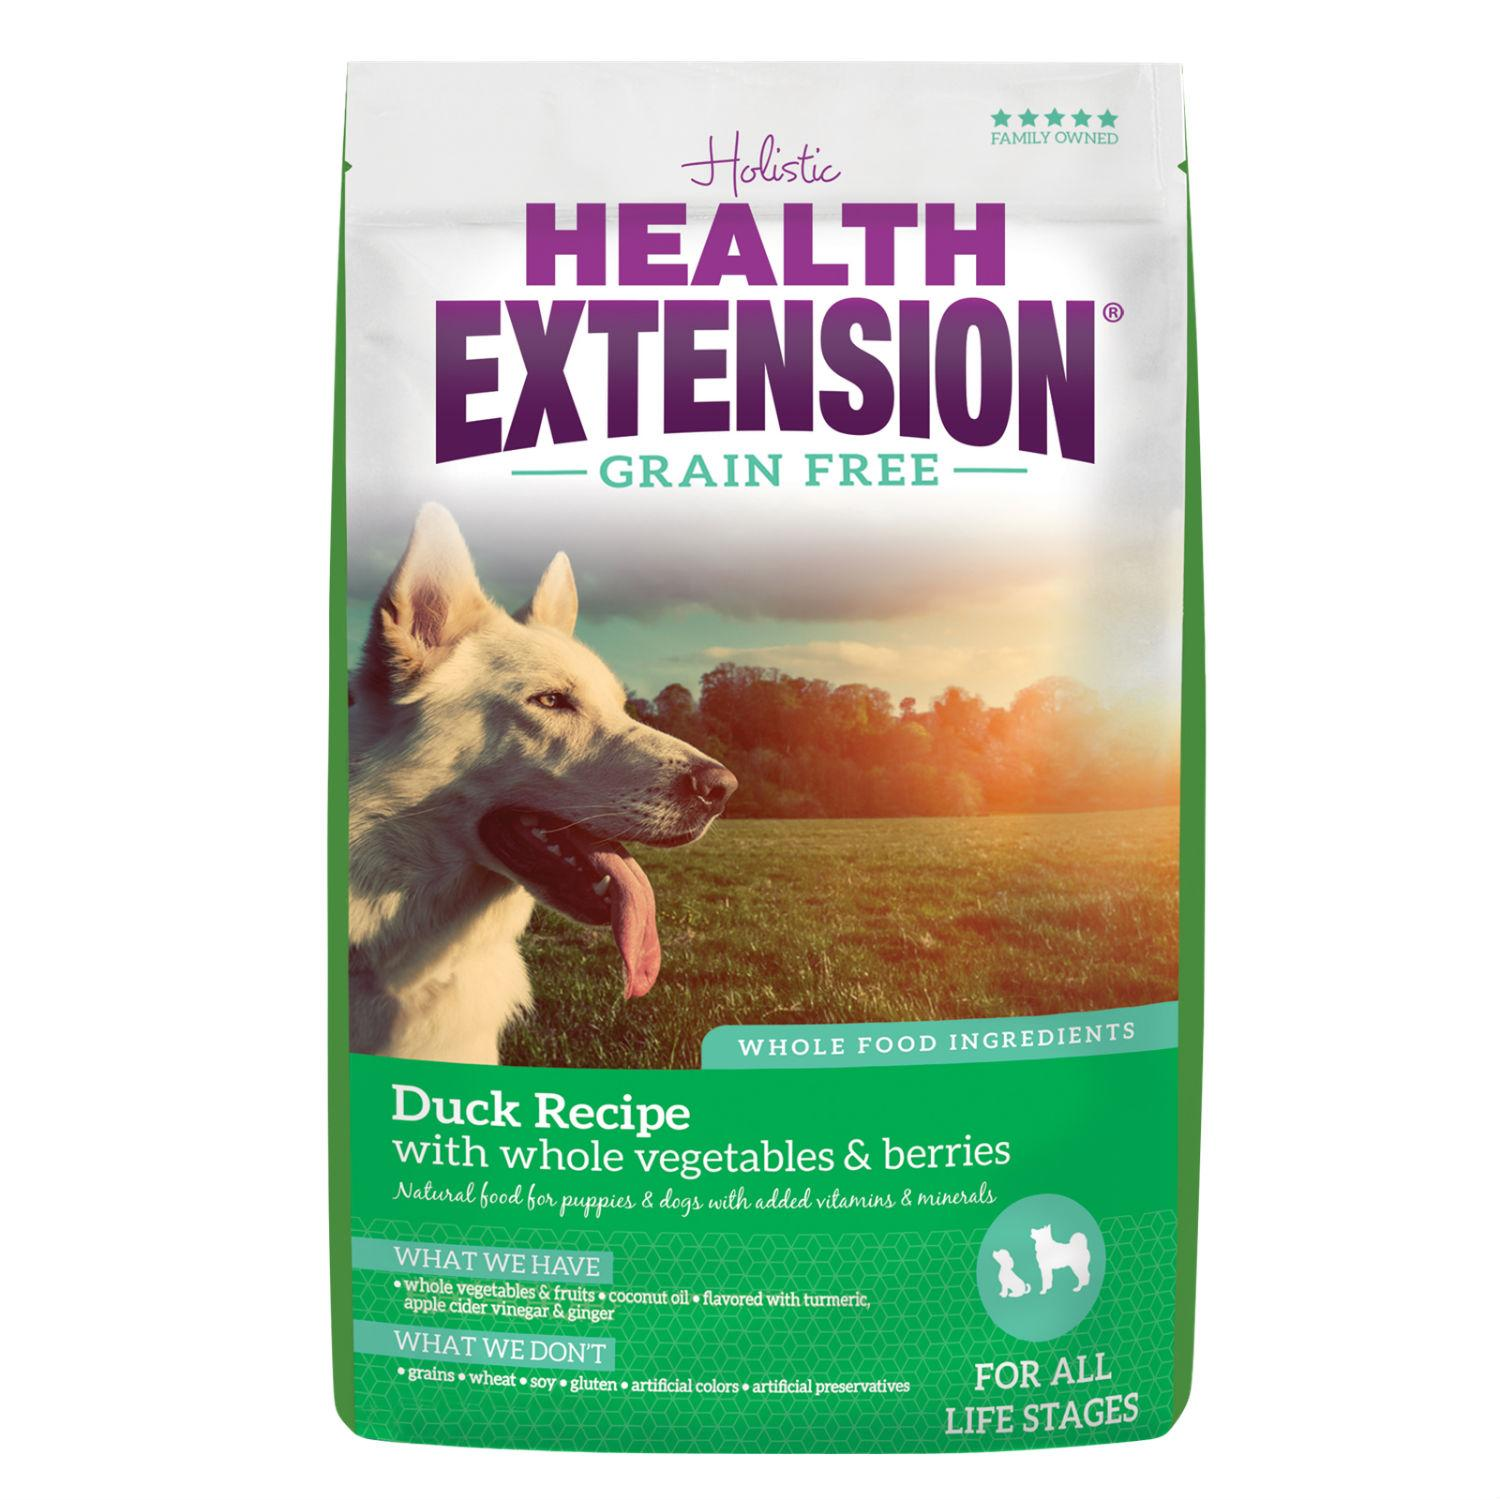 Health Extension Grain Free Dry Dog Food - Duck